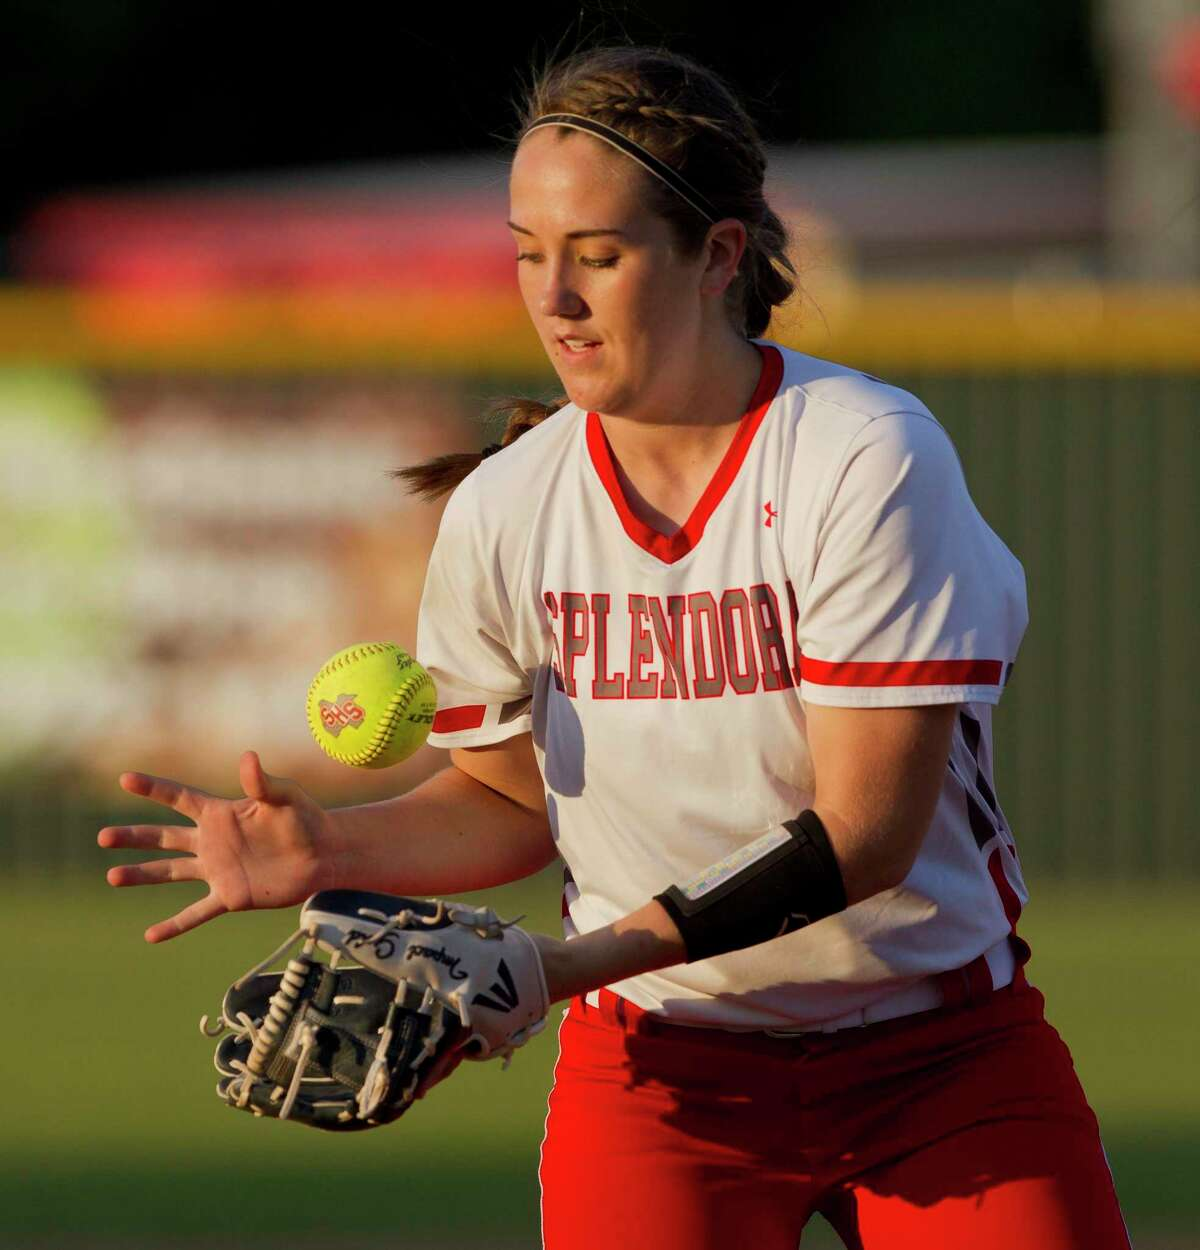 Splendora's Gracie Bumpurs is seen during a game in 2019.